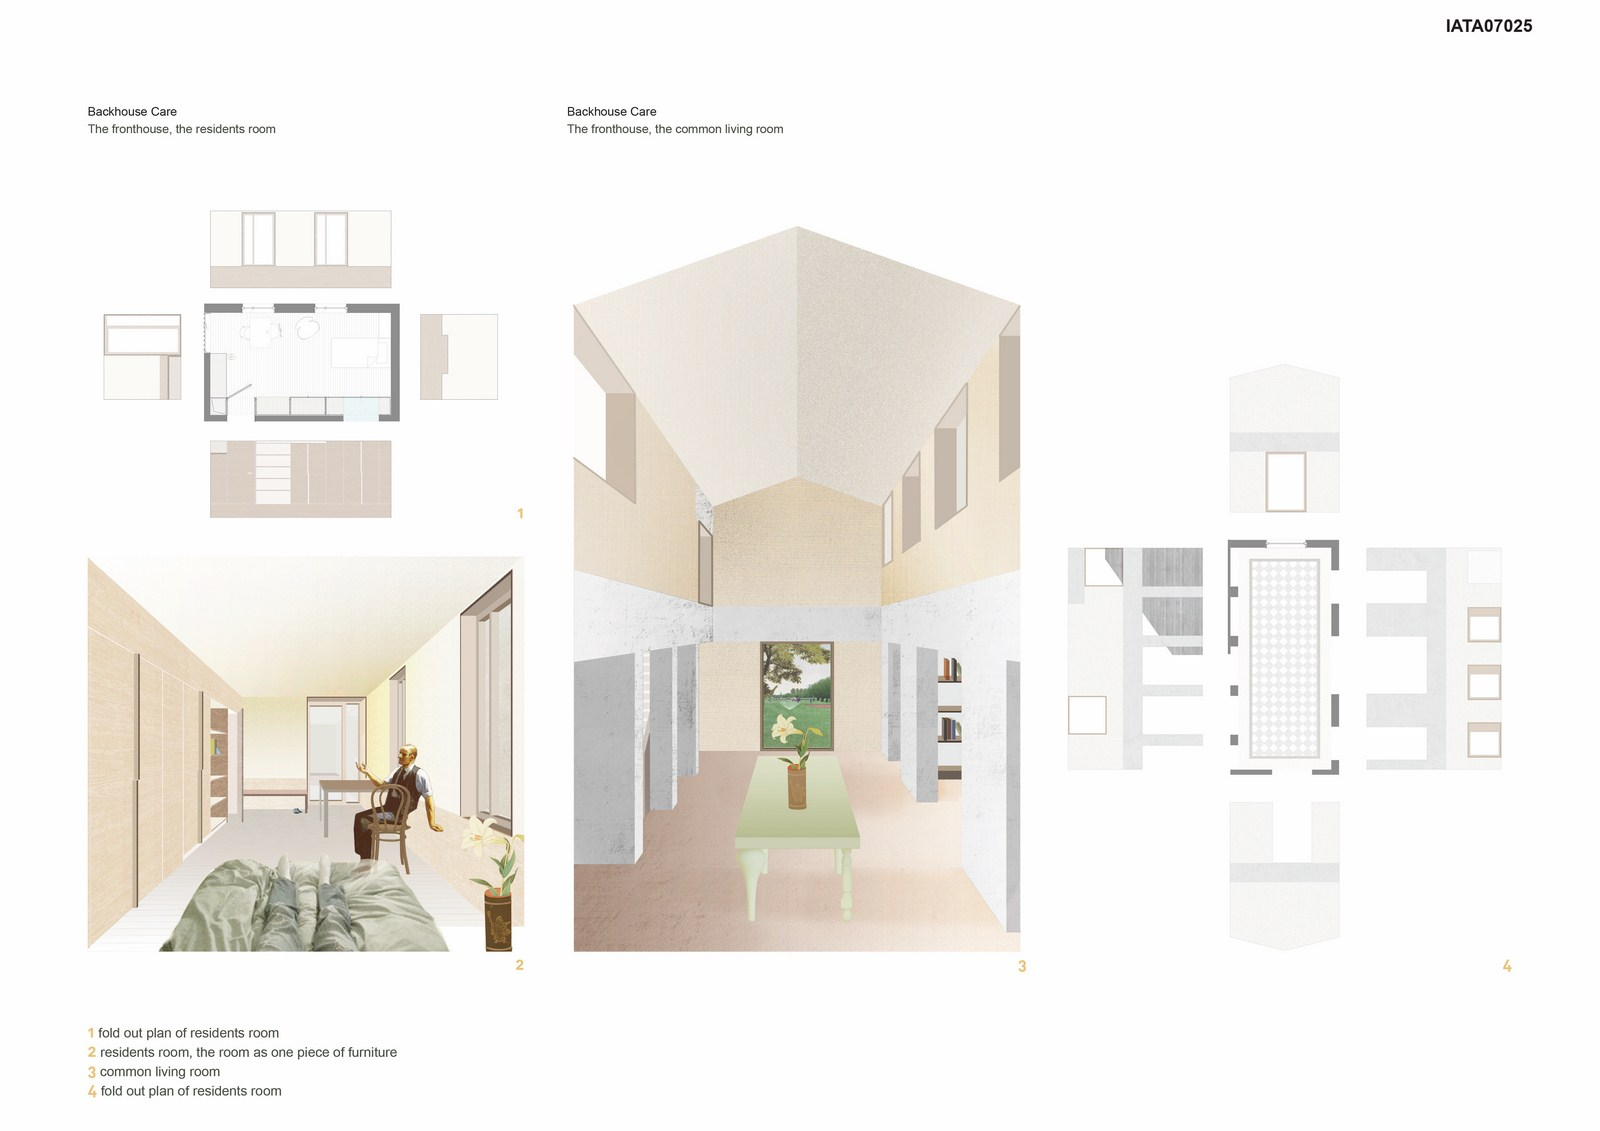 Backhouse Care by Pieter Jan Debuyst - Sheet5